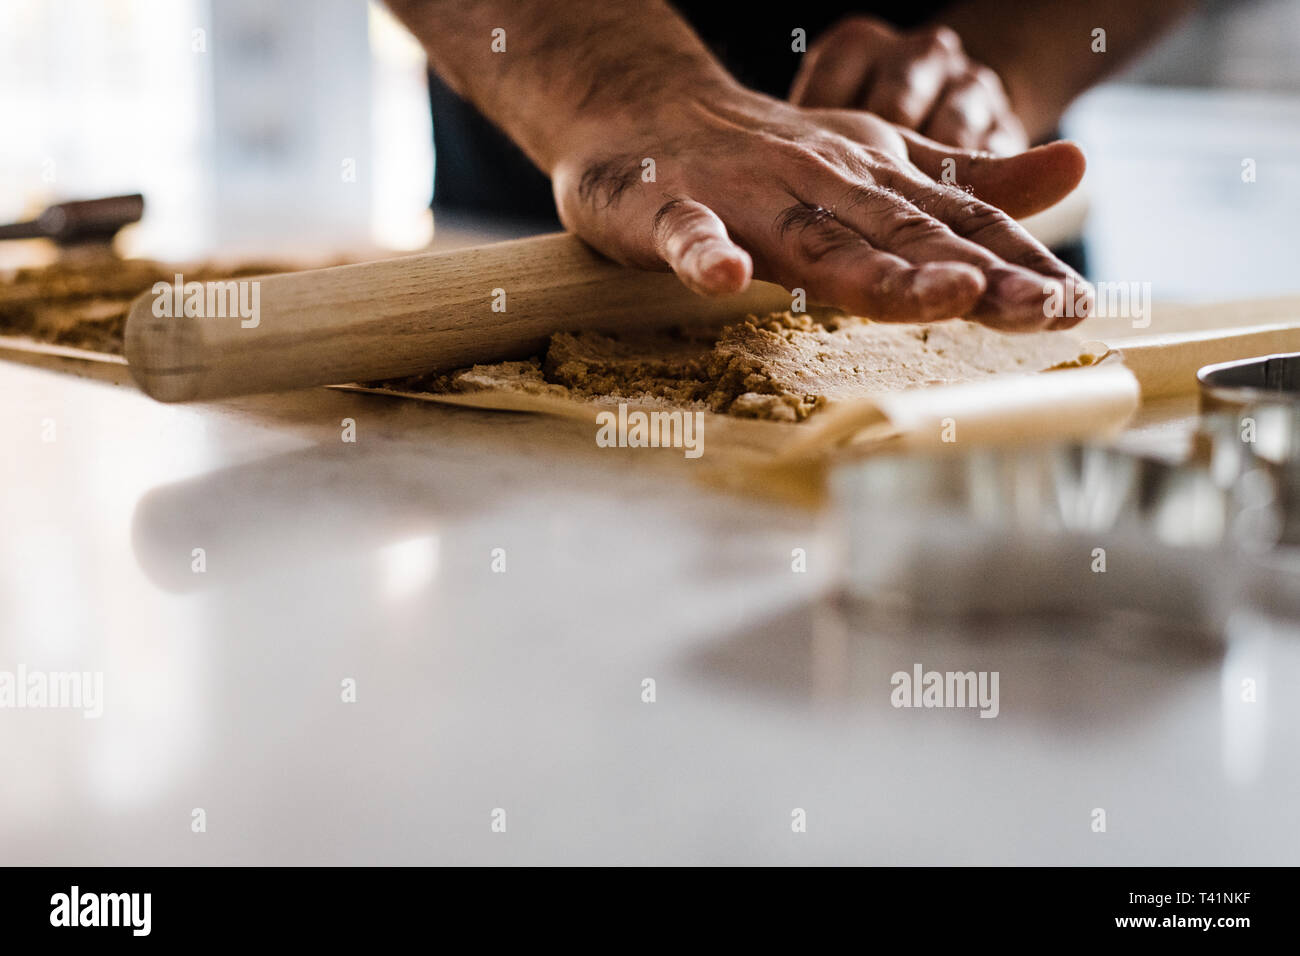 Dad rolling cookie dough for baking - Stock Image